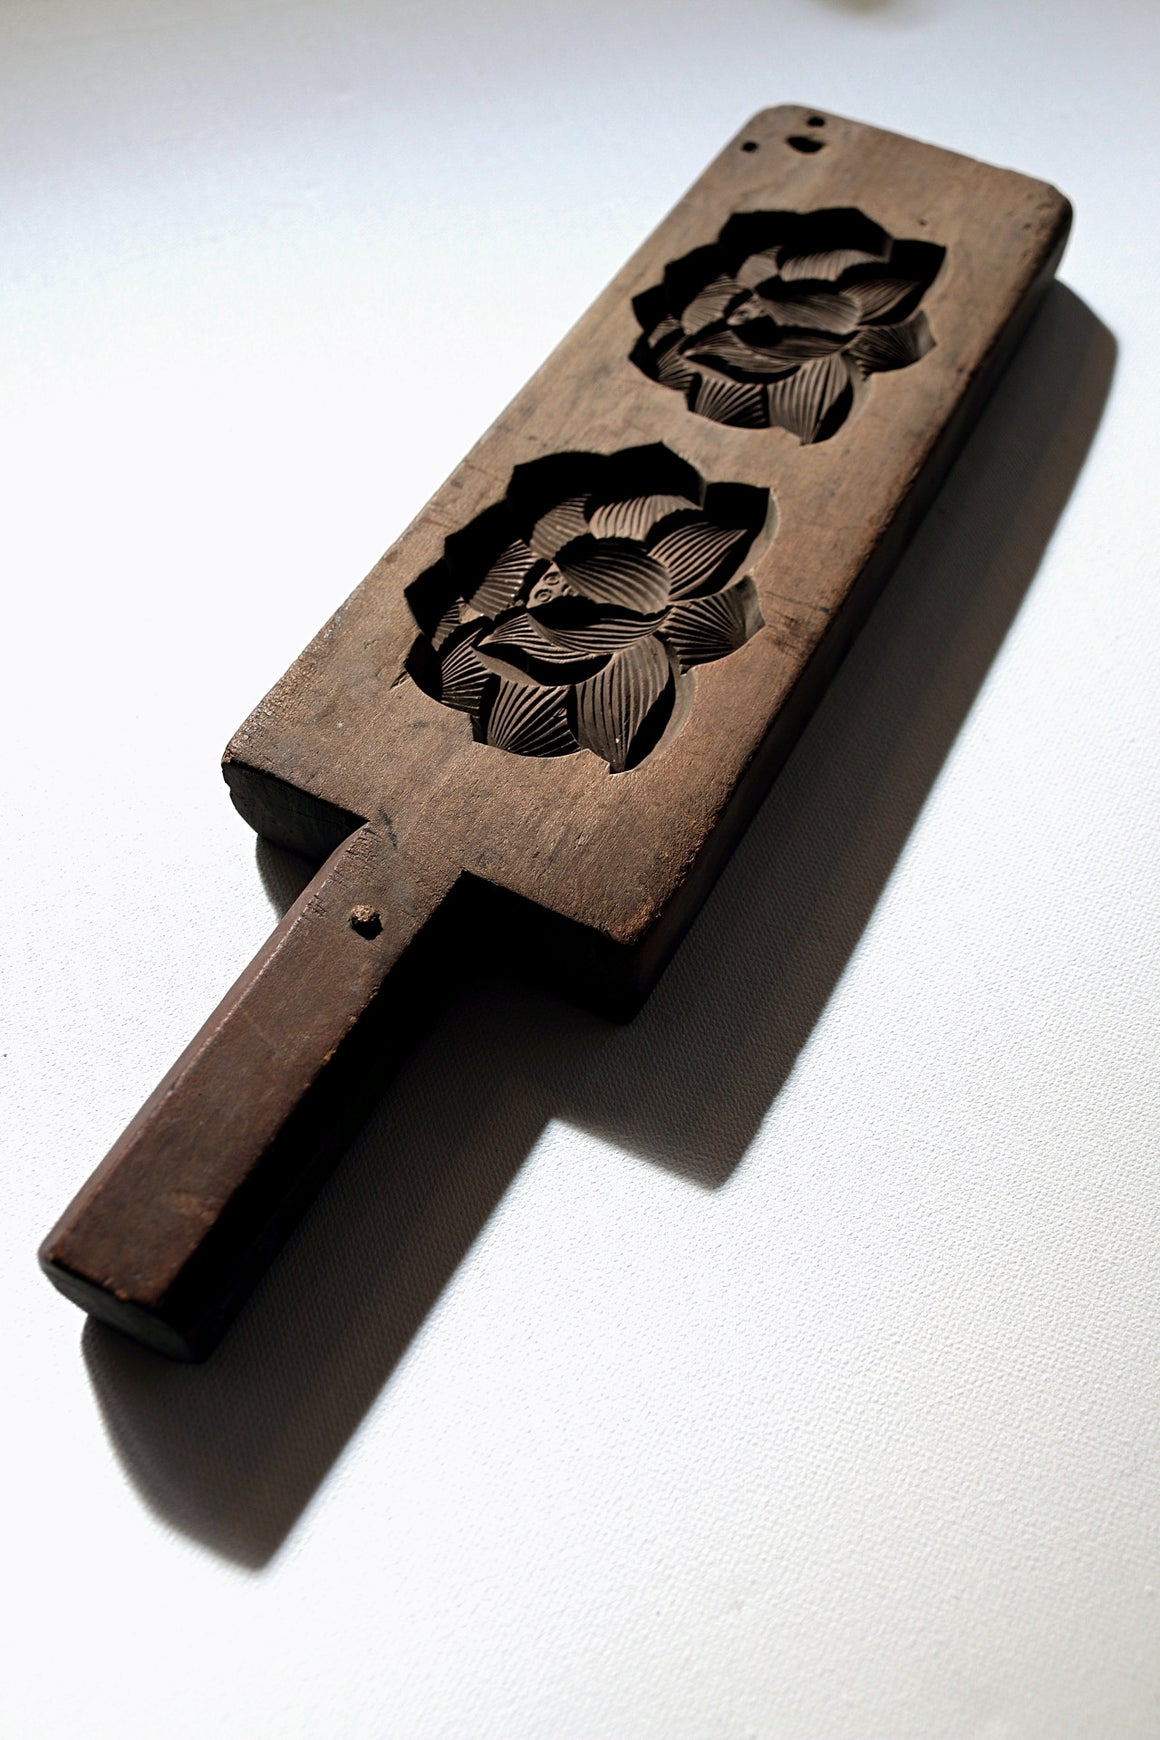 Lotus Flower Kashigata (wagashi mould)